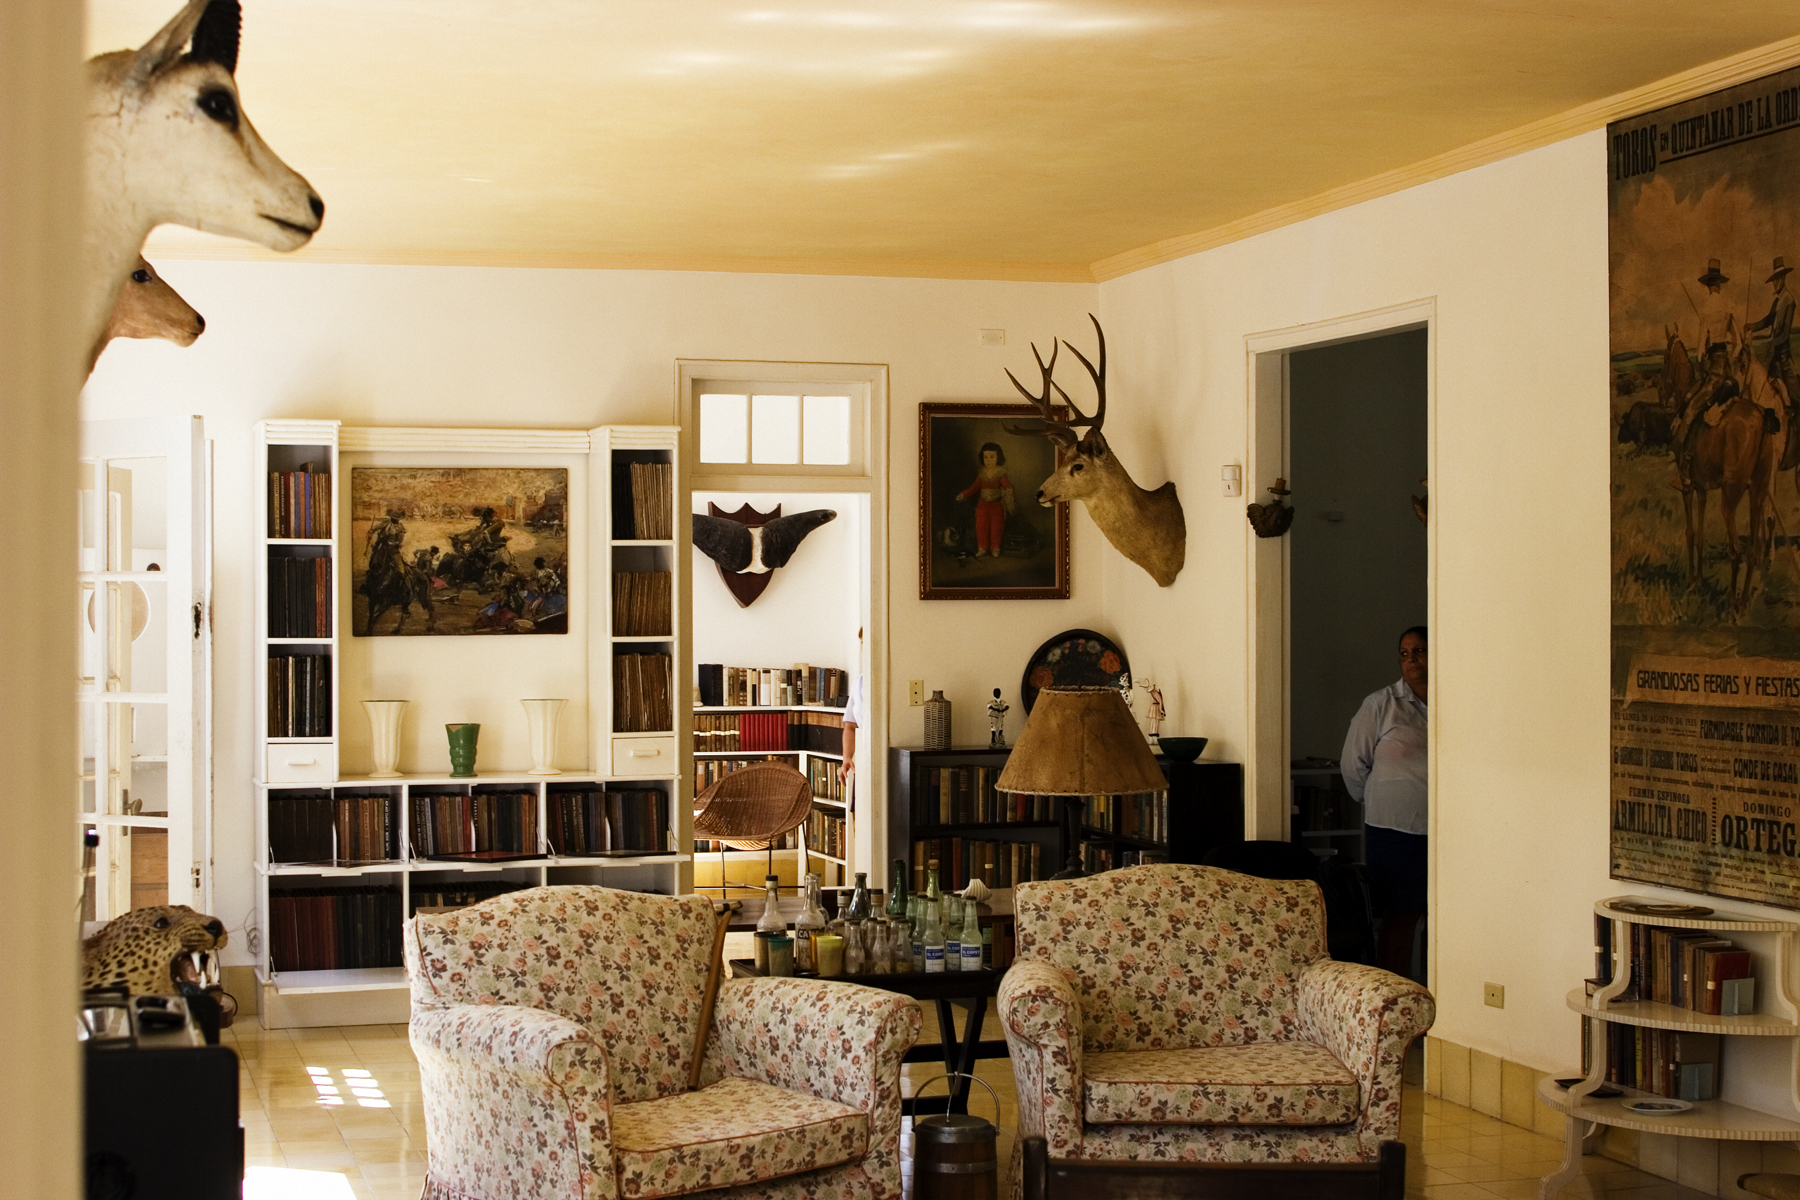 Finca la vigia and hemingway in cuba Ernest hemingway inspired decor